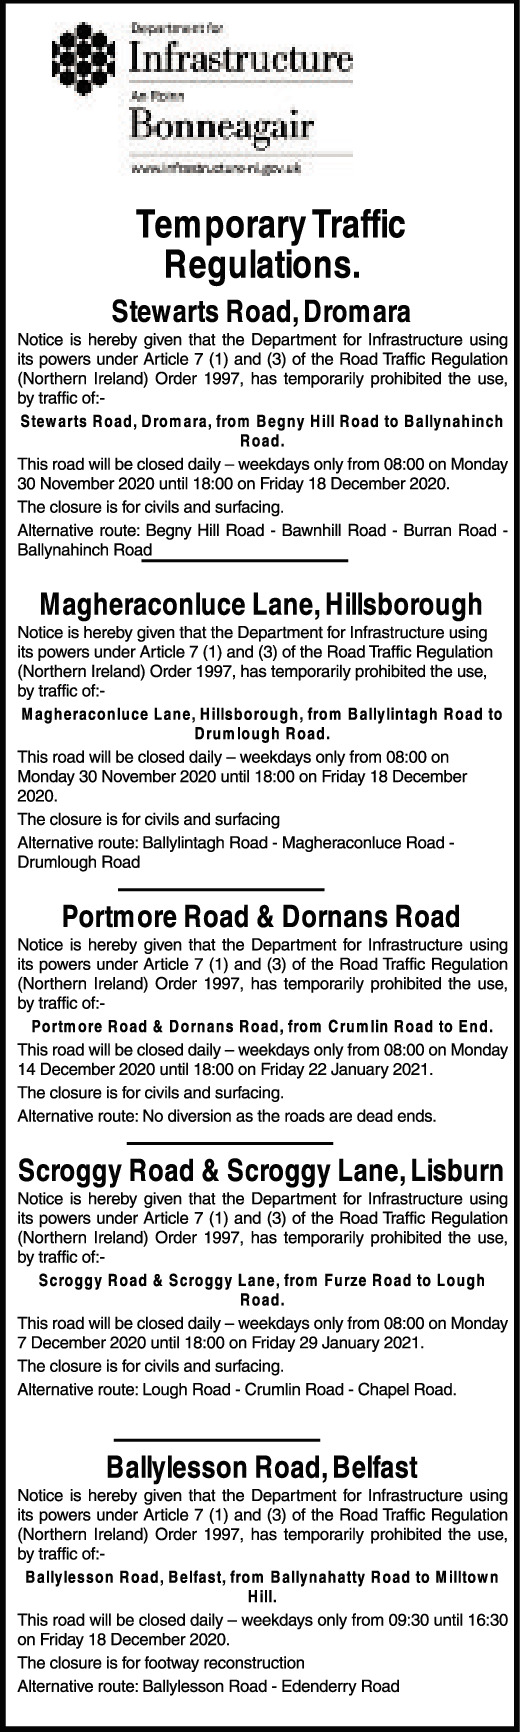 Temporary Traffic Regulations